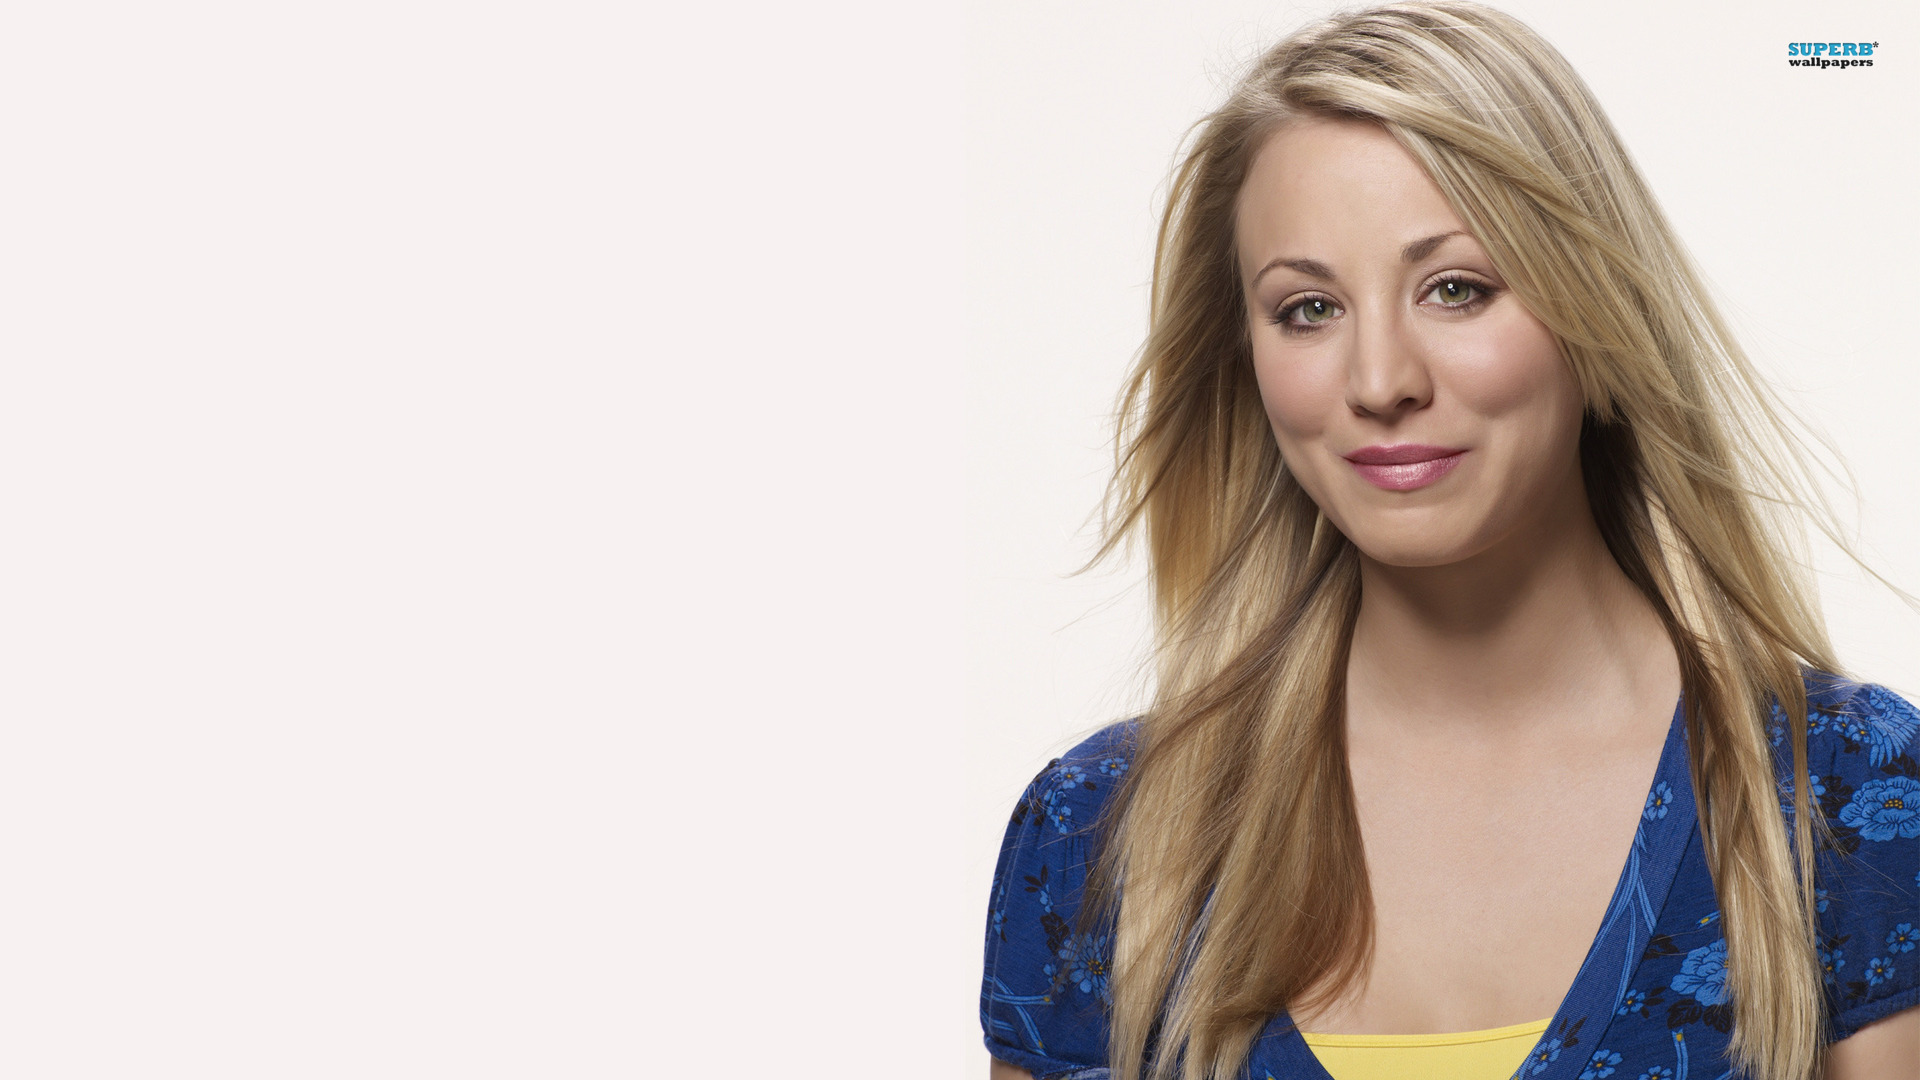 Kaley Cuoco 777512 Full HD Widescreen wallpapers for 1920x1080